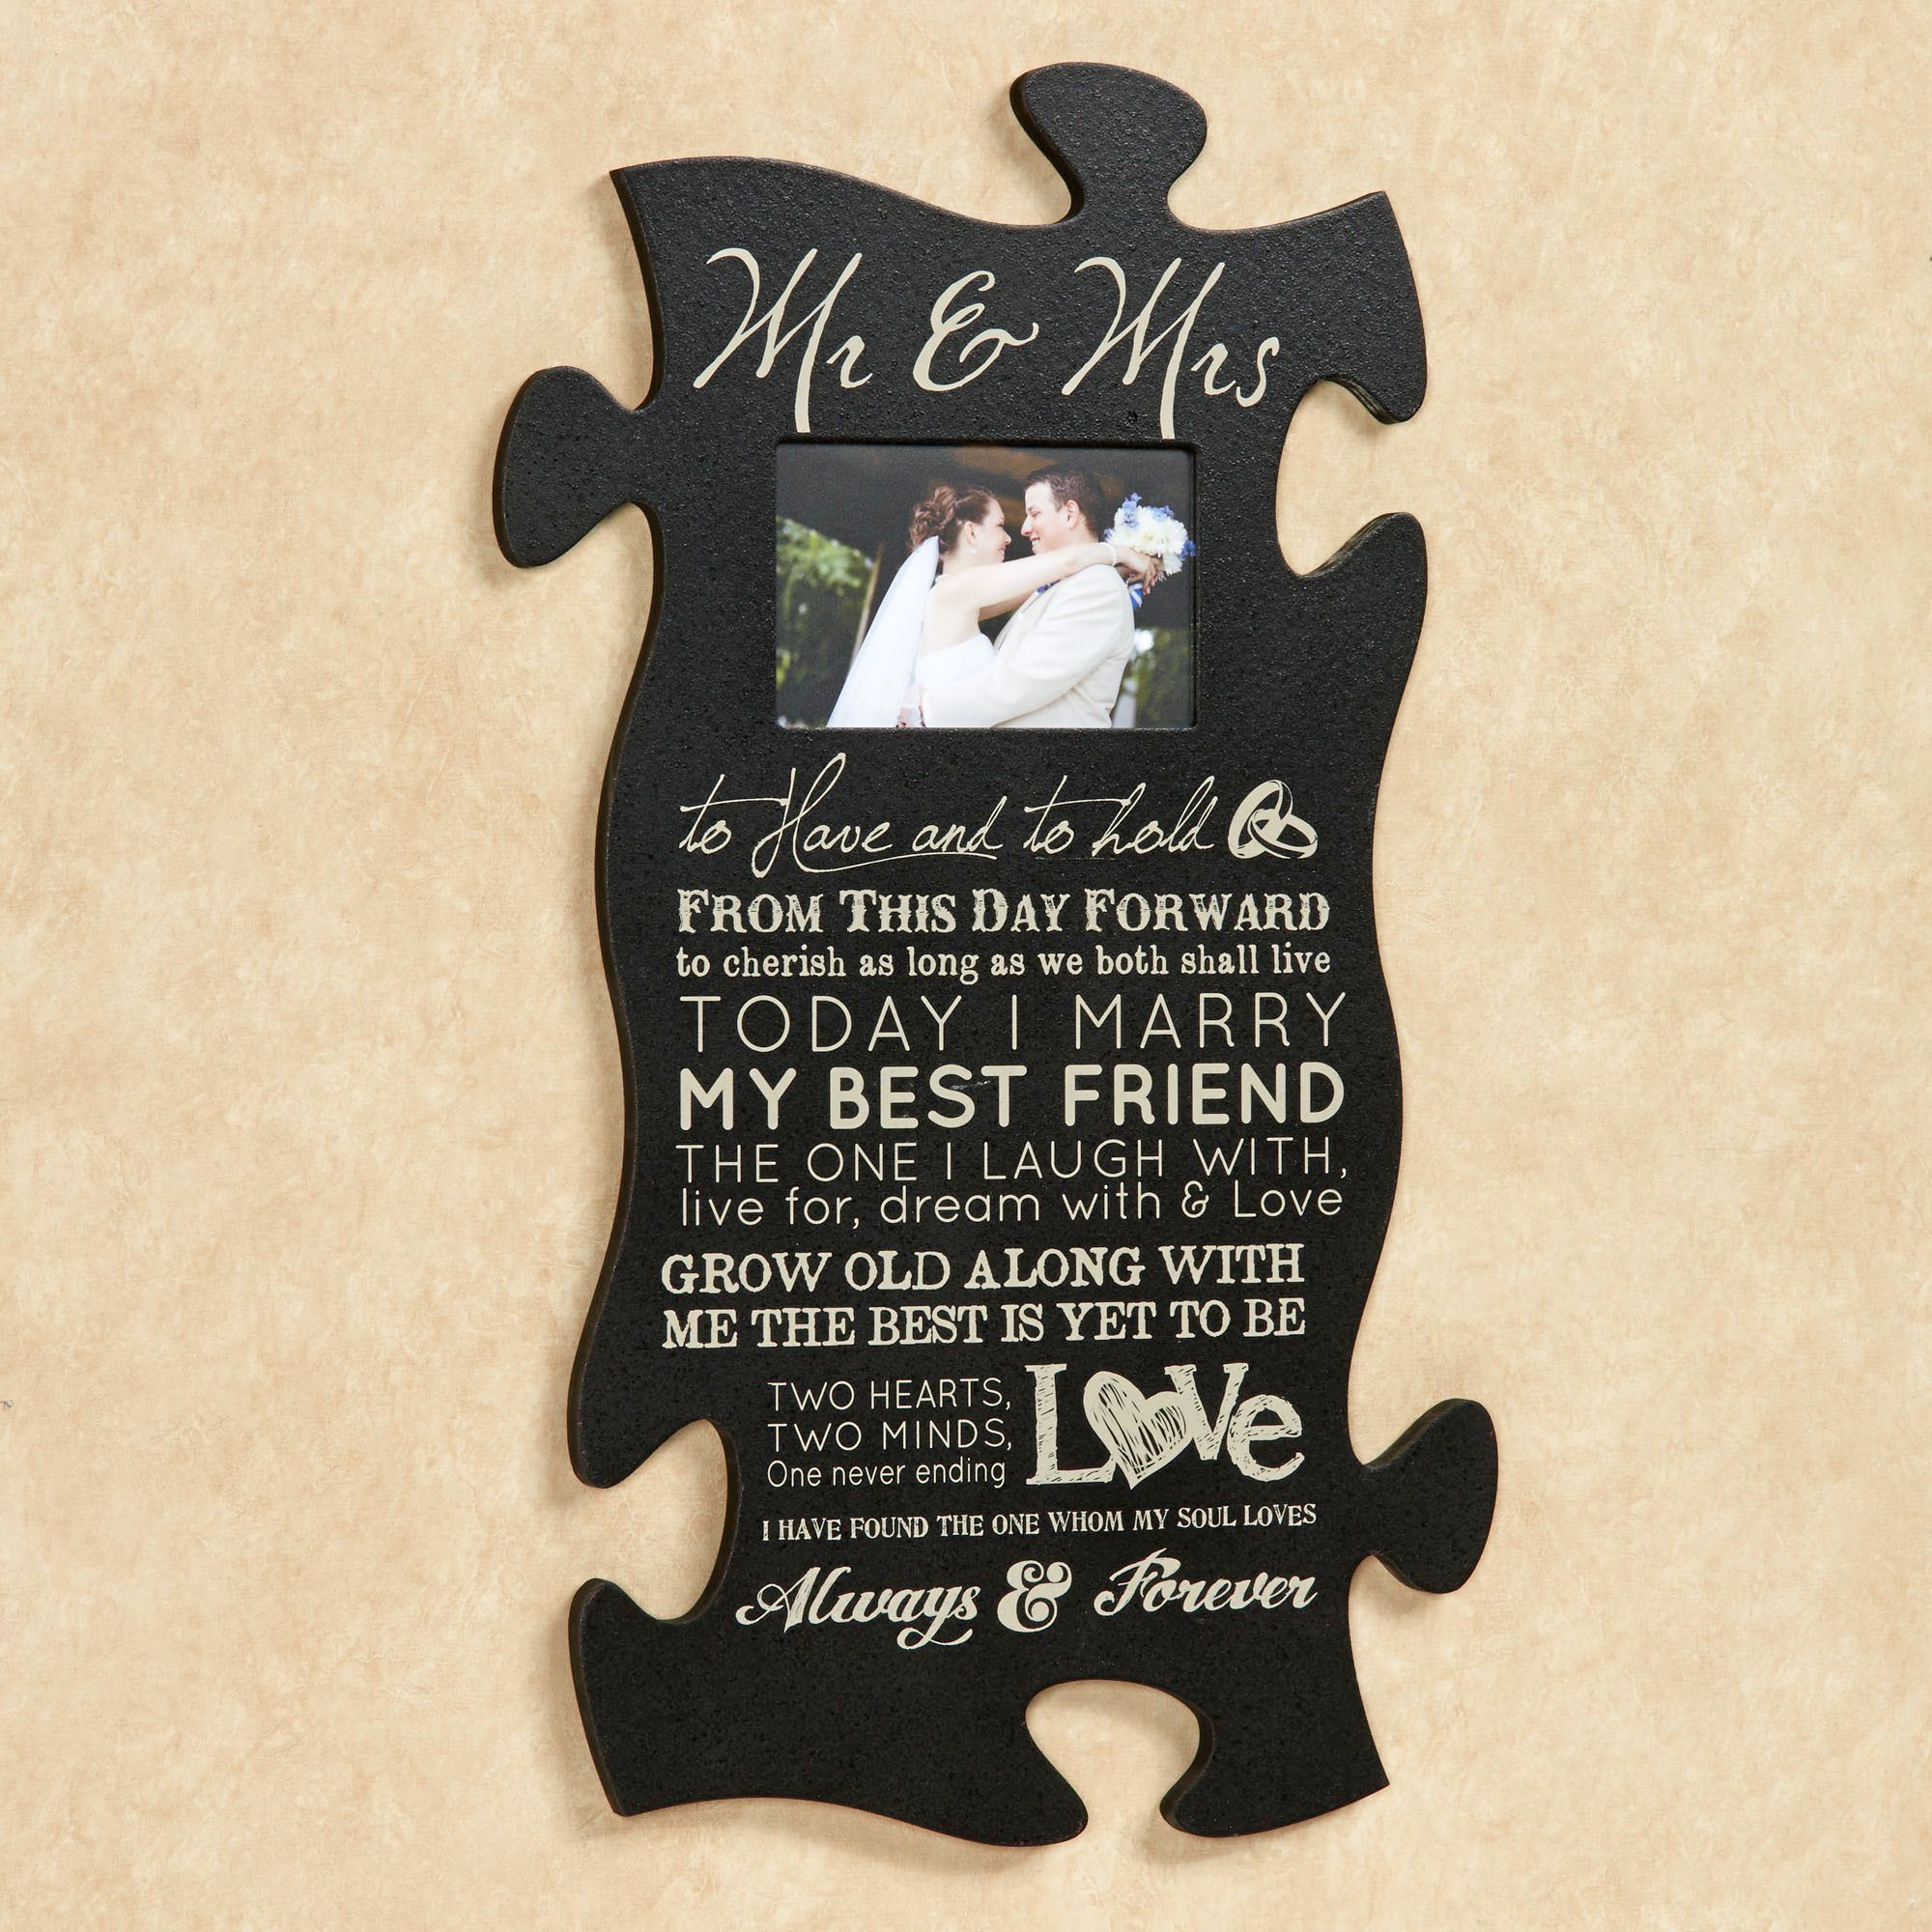 Love Quote Picture Frames Impressive Love And Marriage Photo Frame Puzzle Piece Wall Art